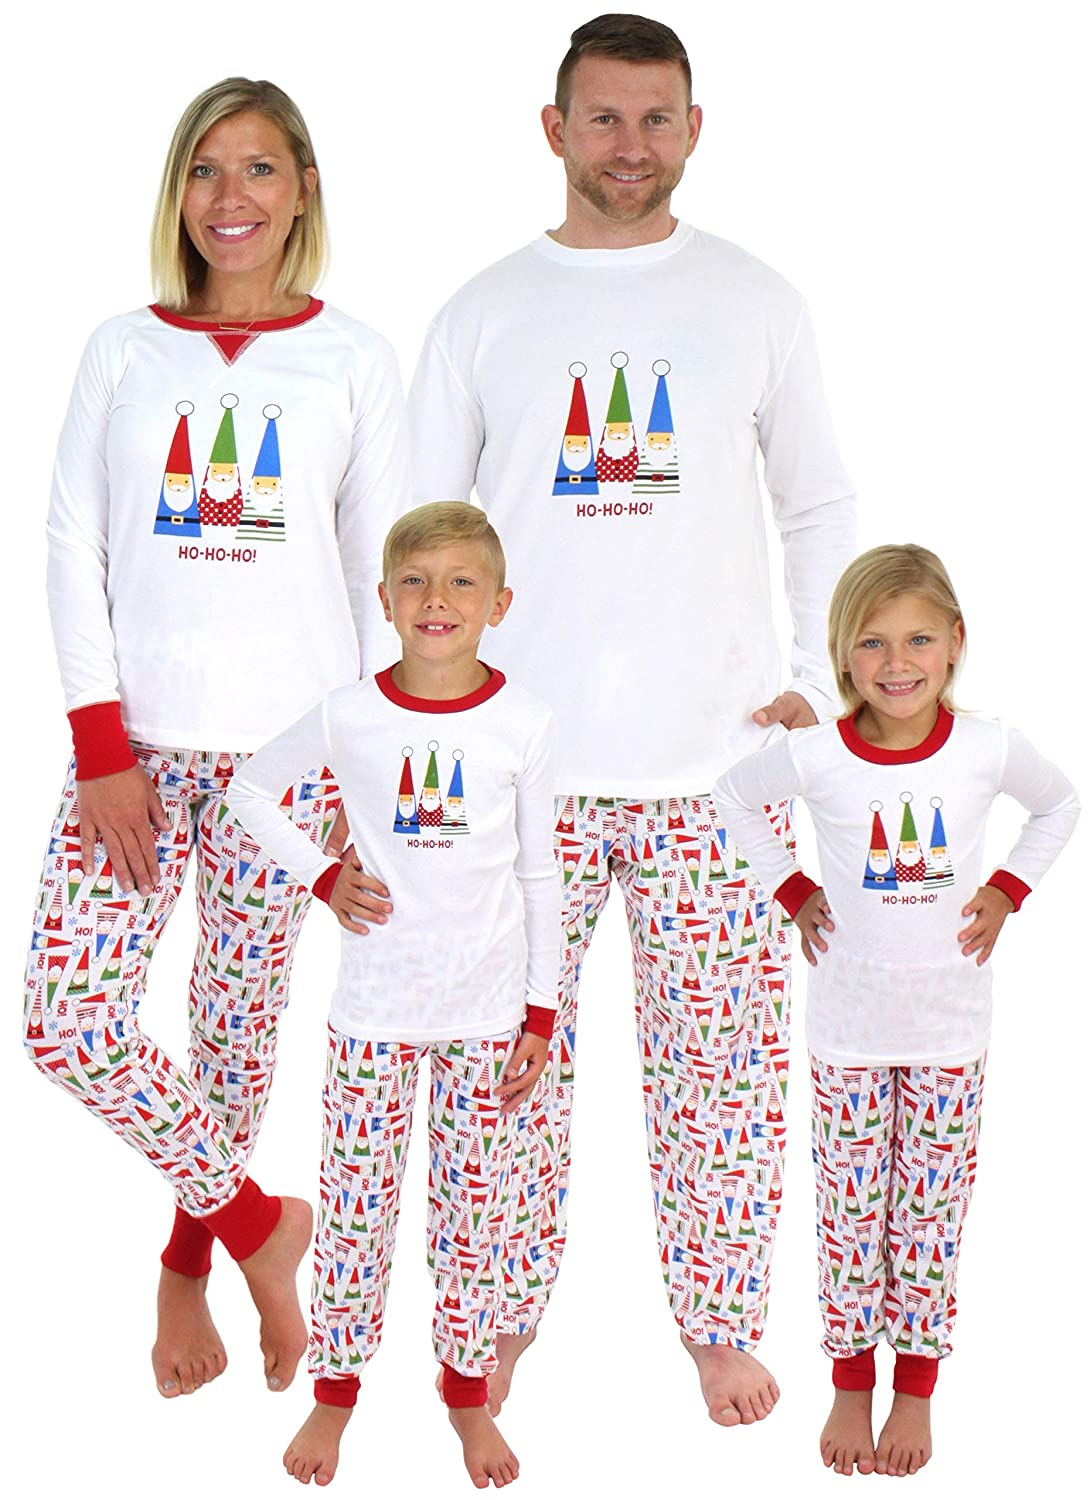 Sleepyheads Christmas Family Matching Gnome Pyjama PJ Sets